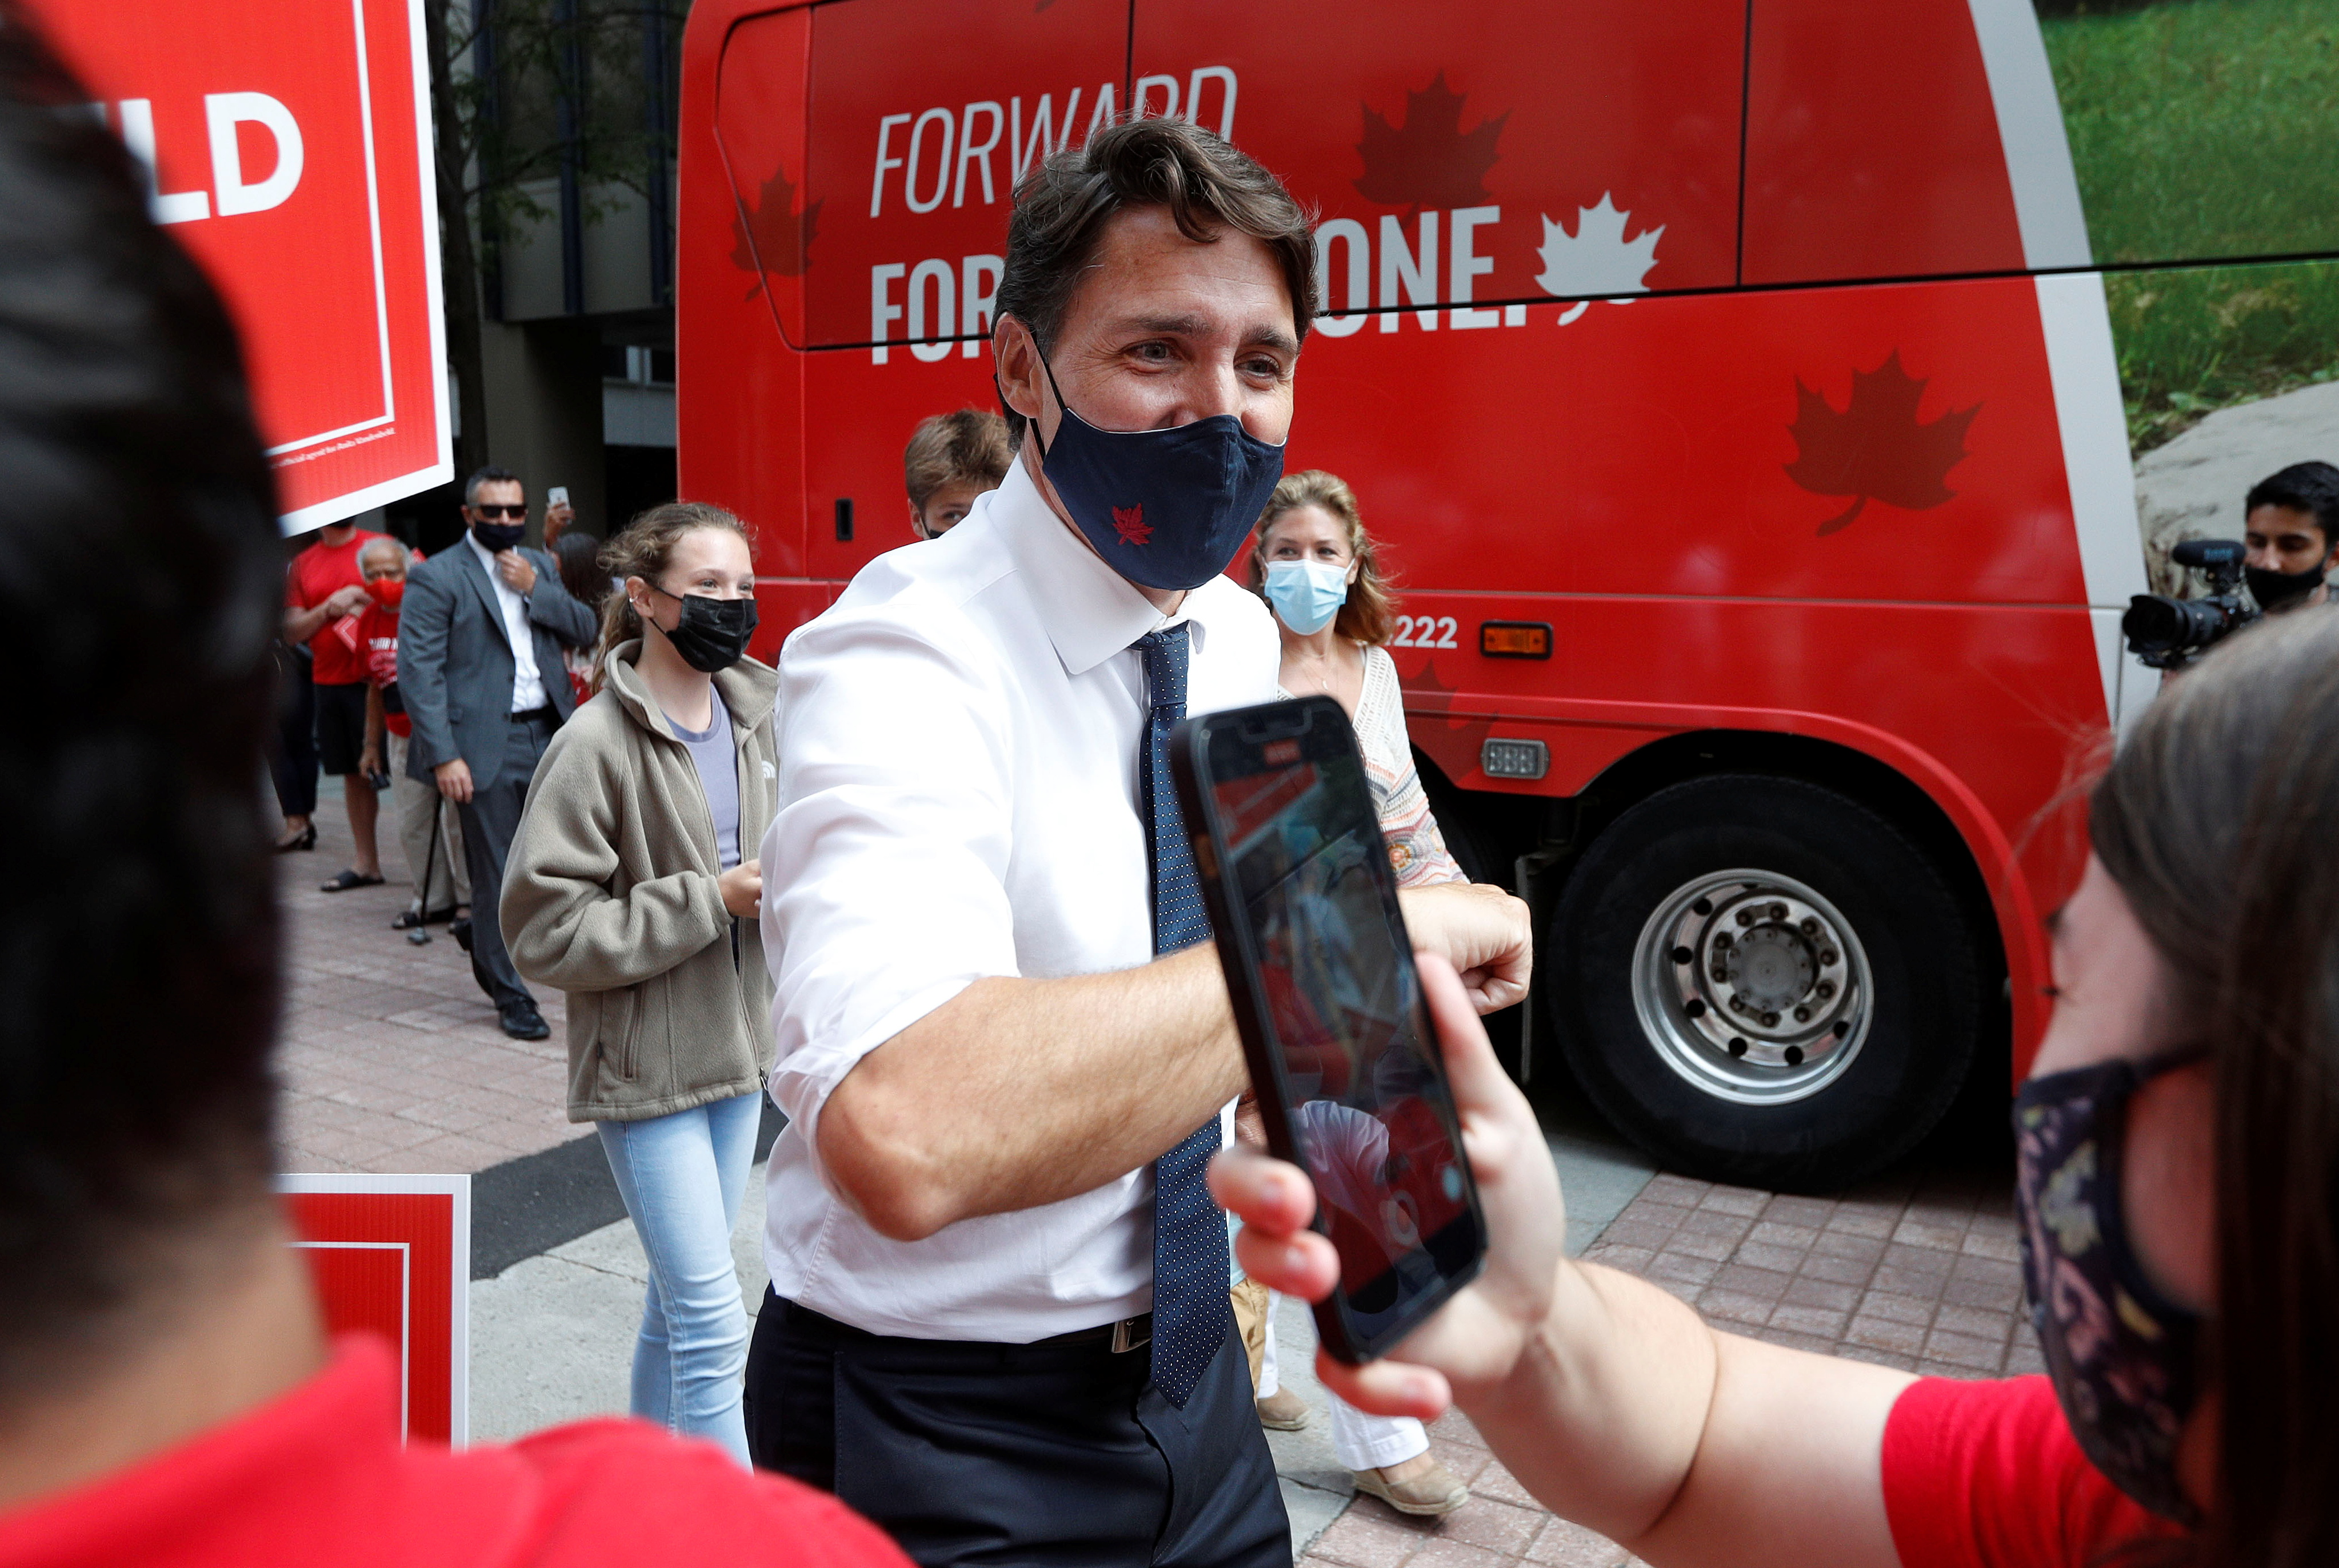 Canada's Liberal Prime Minister Justin Trudeau greets supporters as he arrives at the Marriott hotel before embarking on his first election campaign visit, in Ottawa, Ontario, Canada August 15, 2021. REUTERS/Lars Hagberg